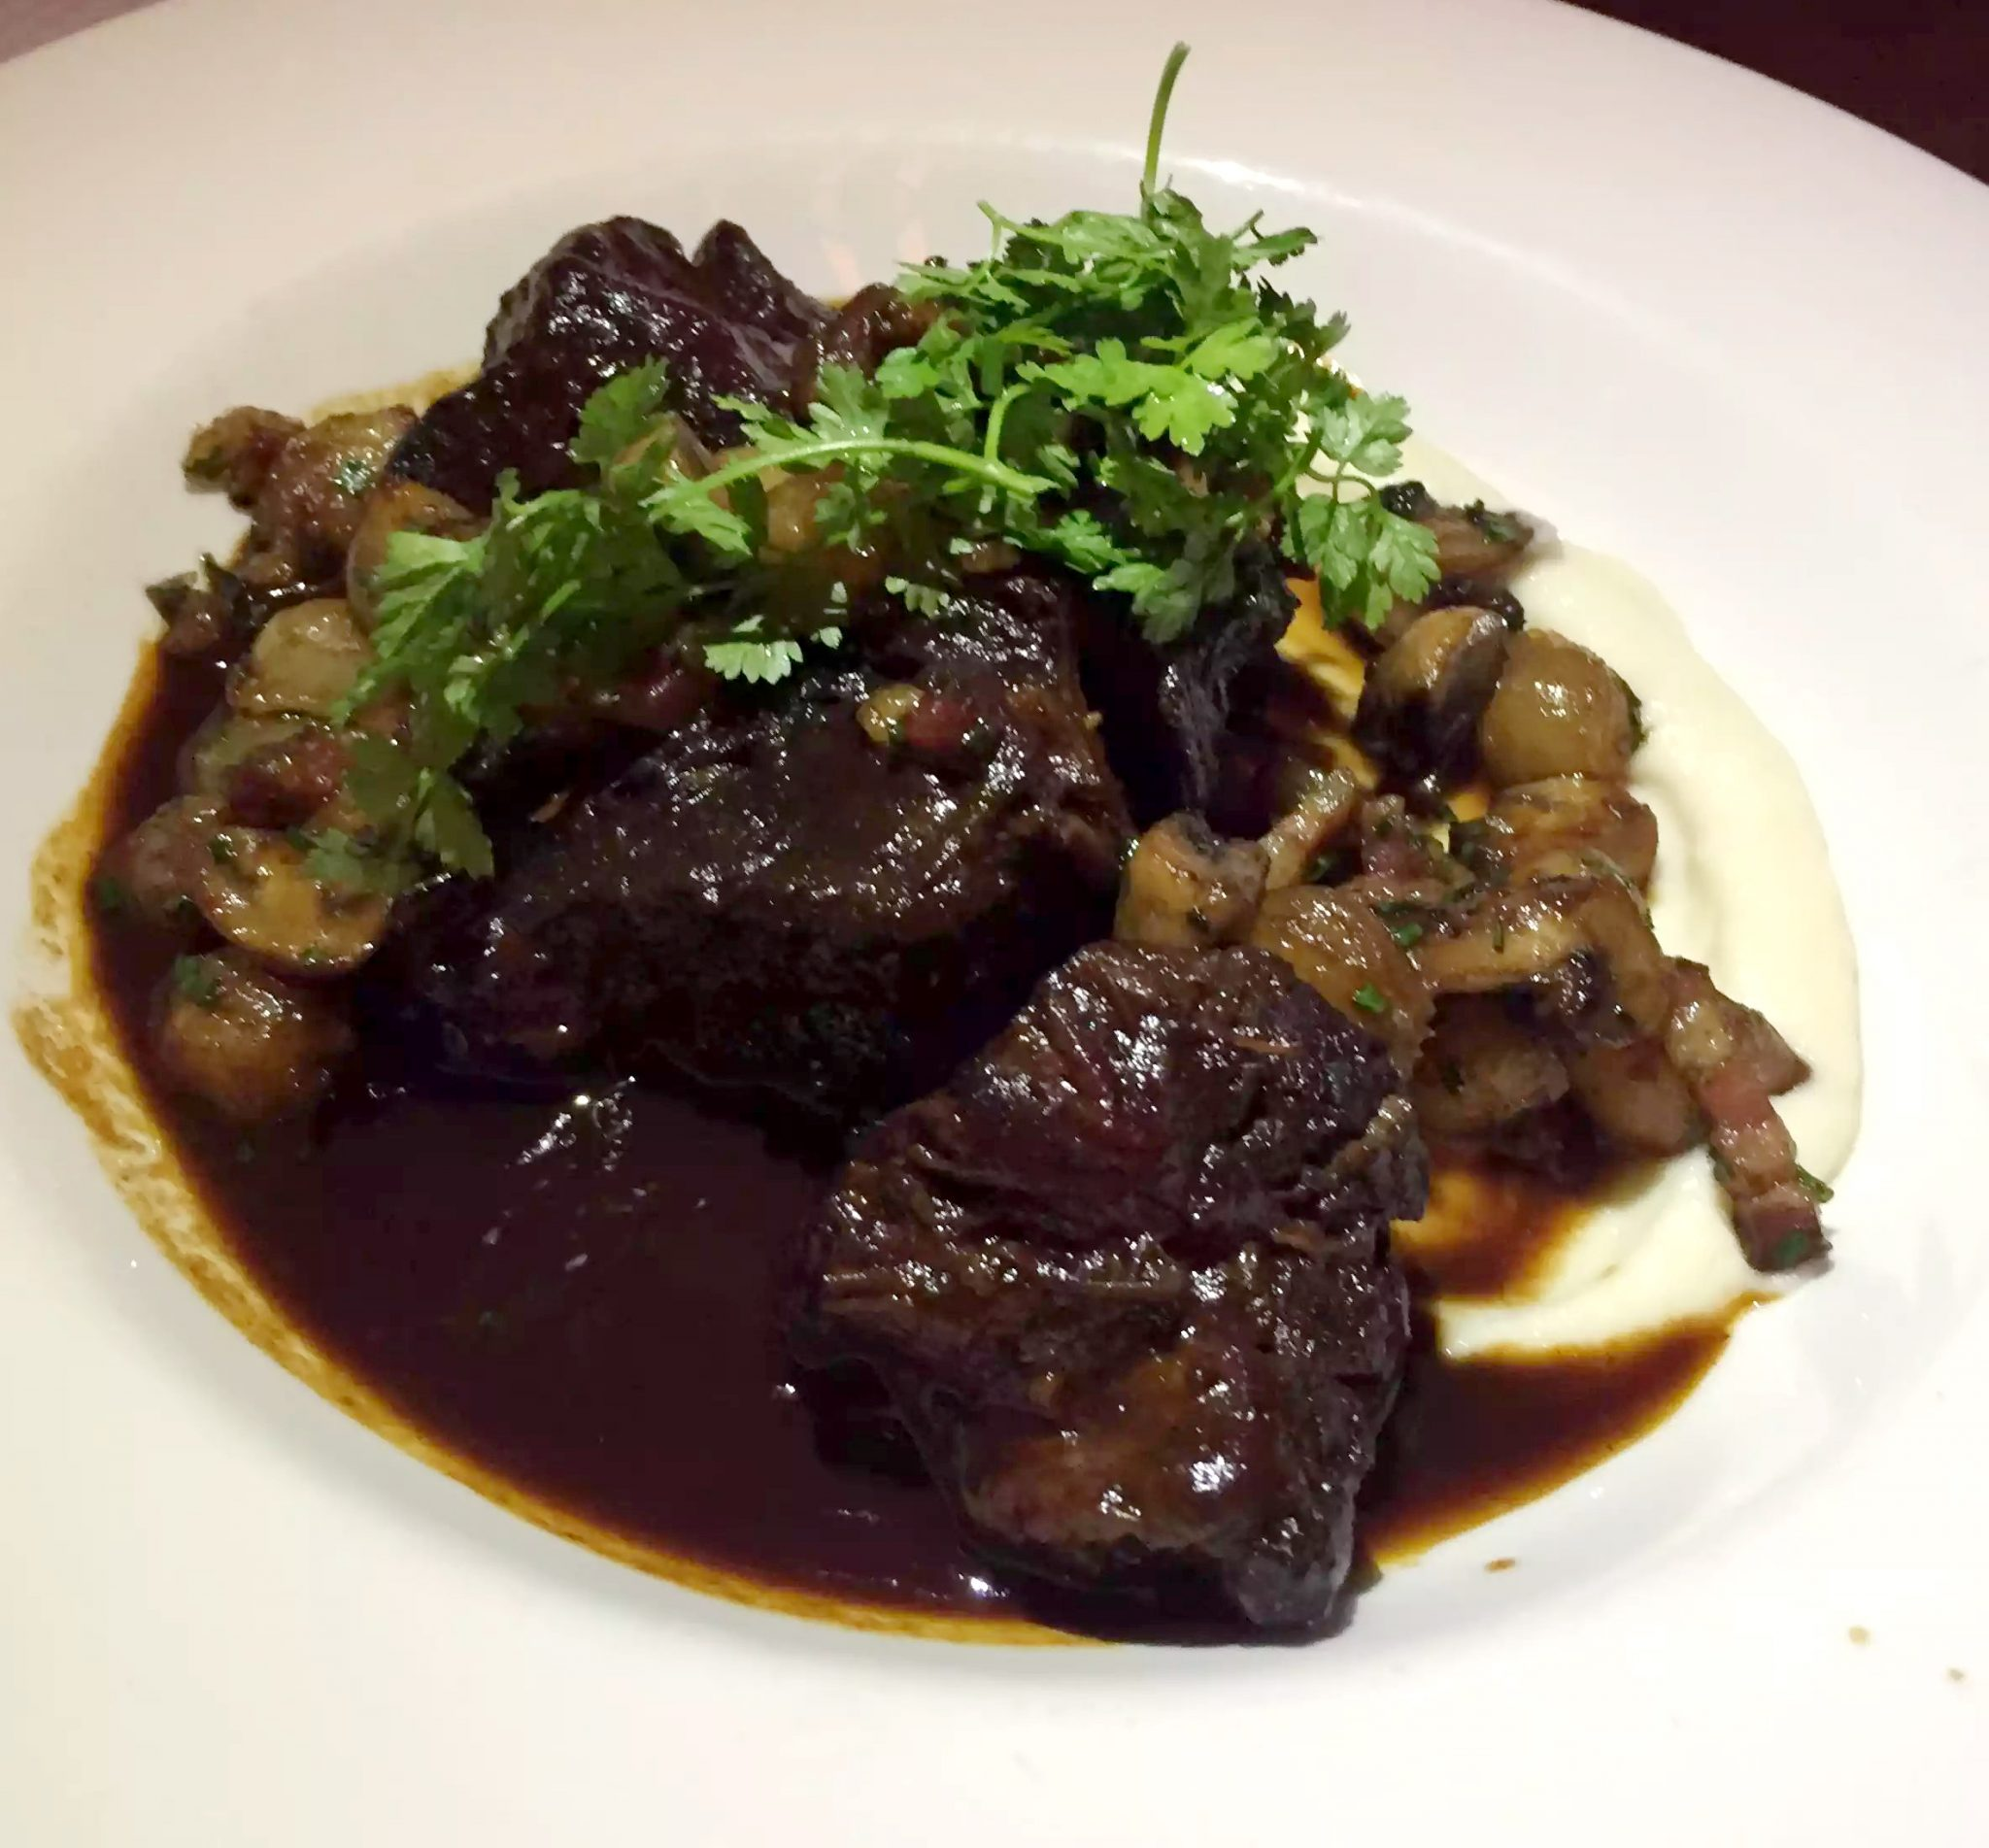 Balthazar Restaurant Covent Garden, London Ox cHEEK bourguignon